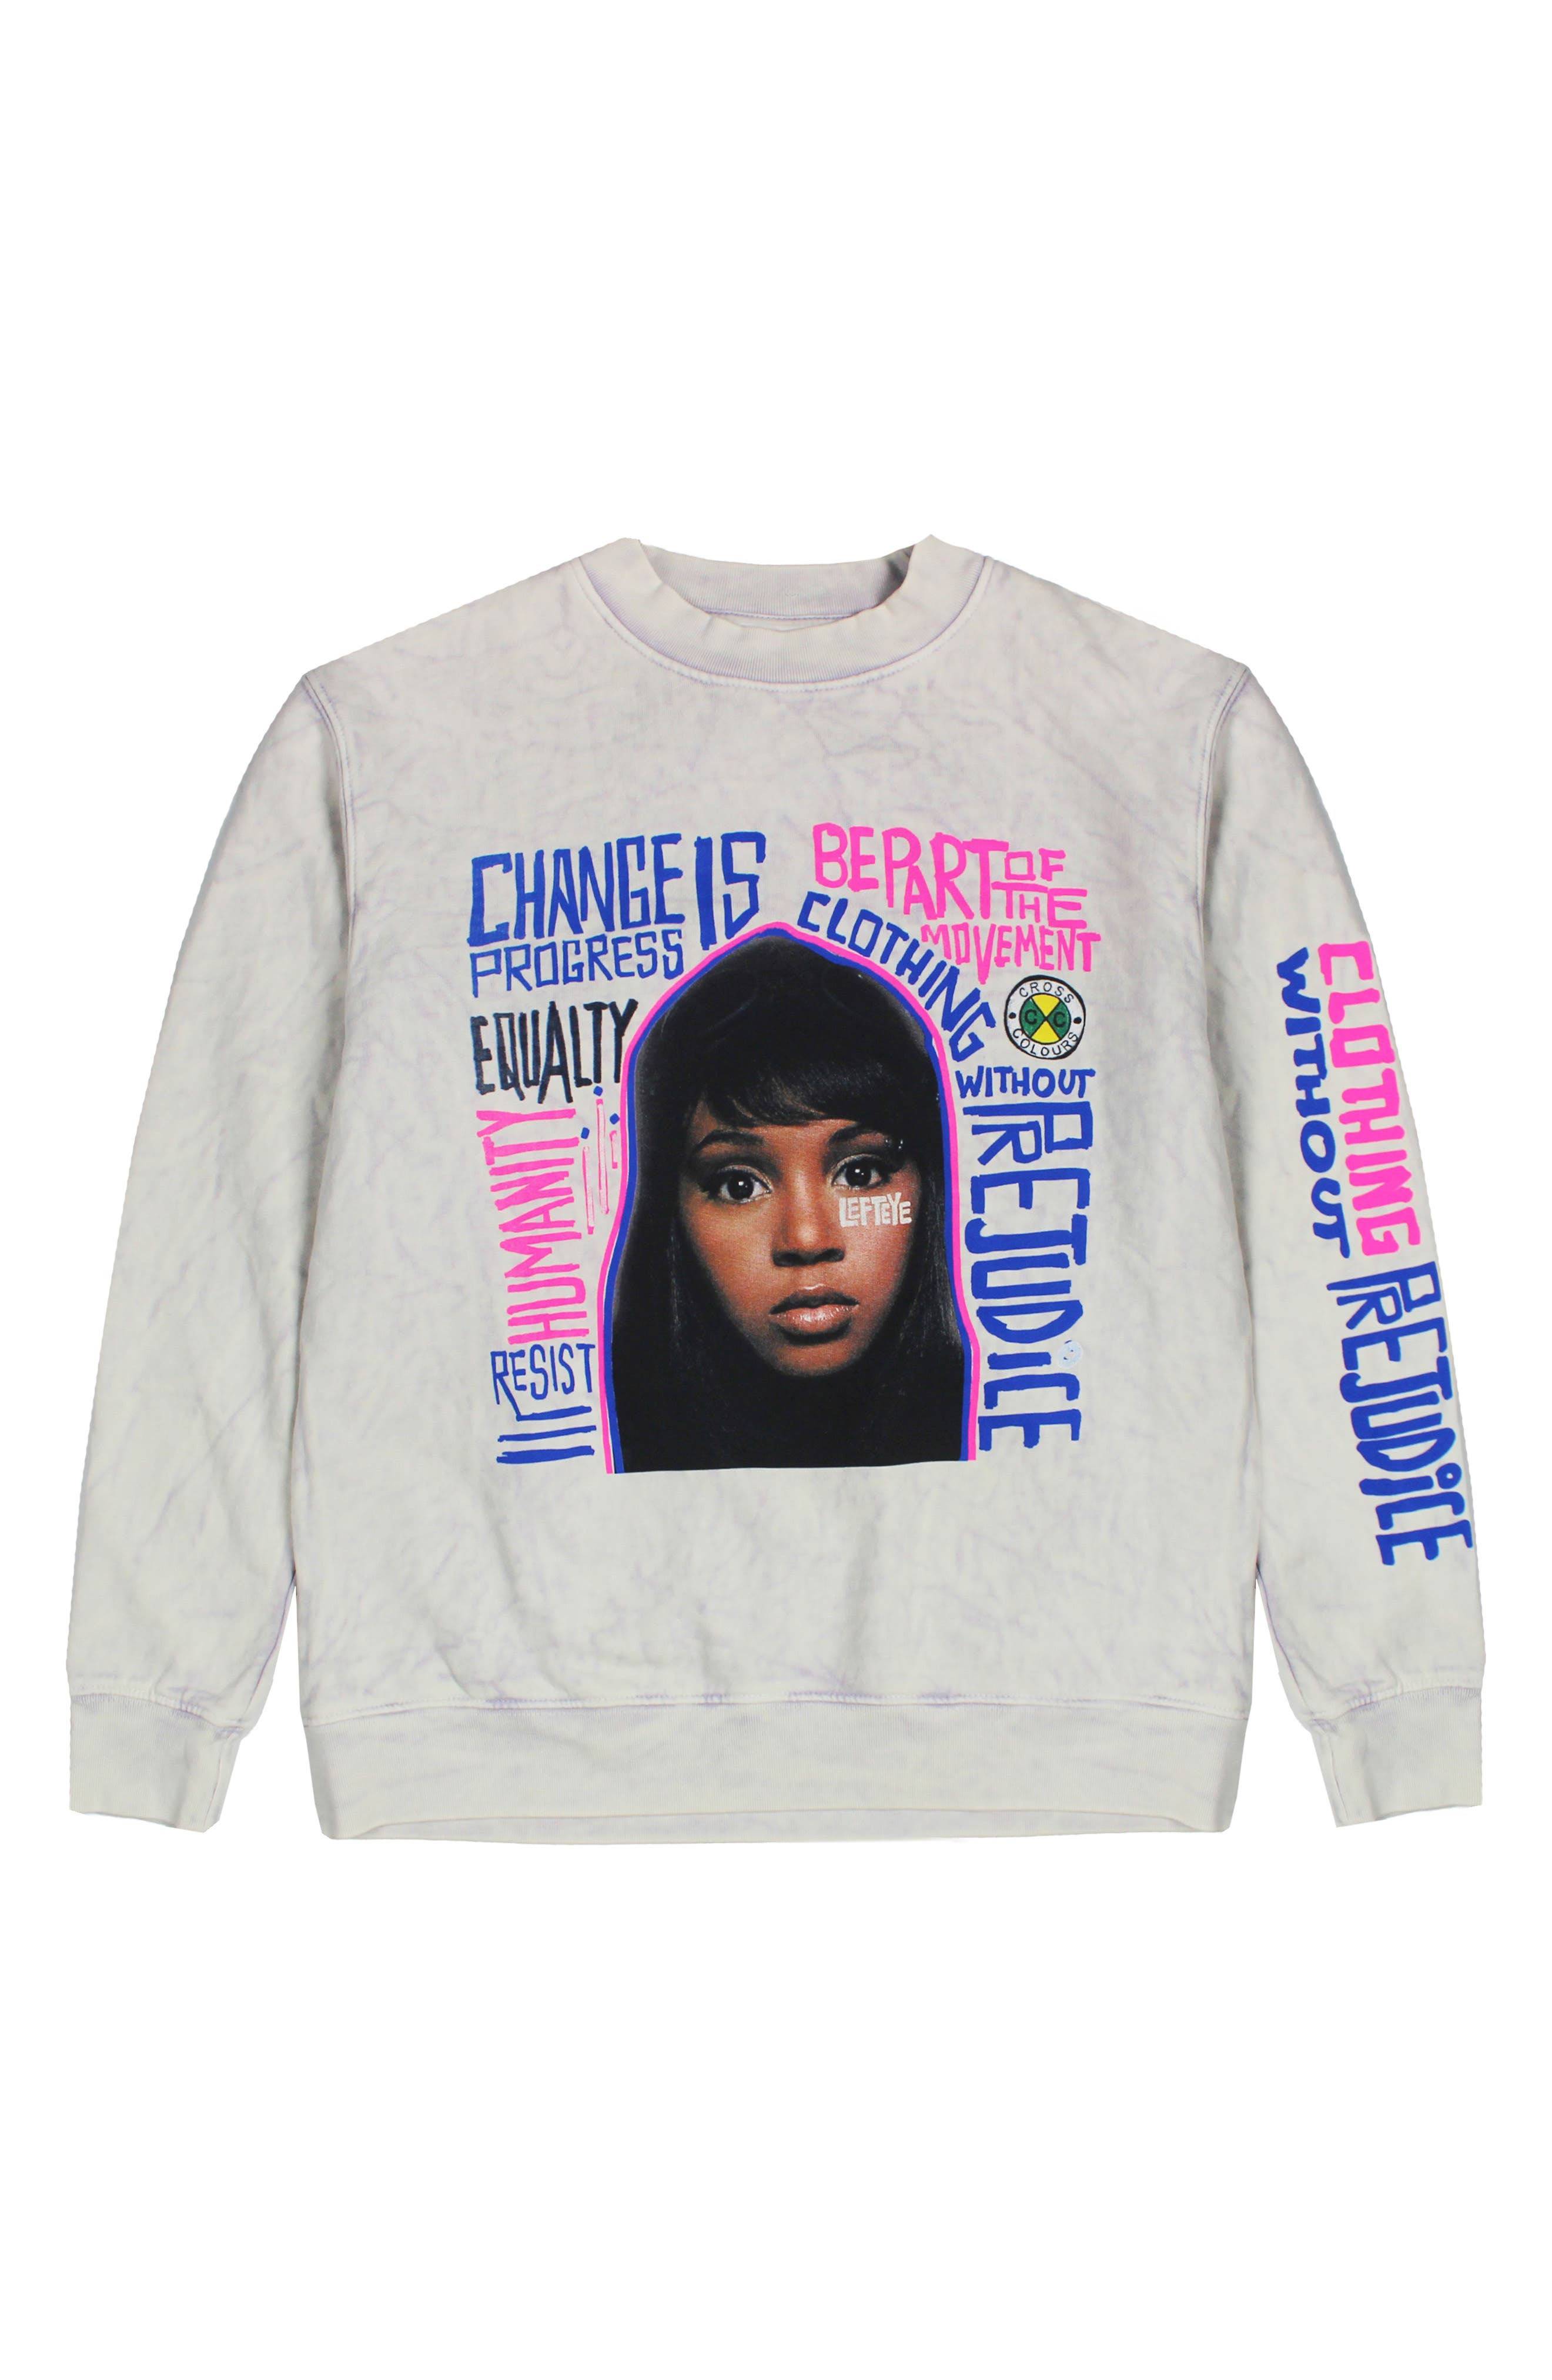 Left Eye Message Long Sleeve Cotton Blend Graphic Tee